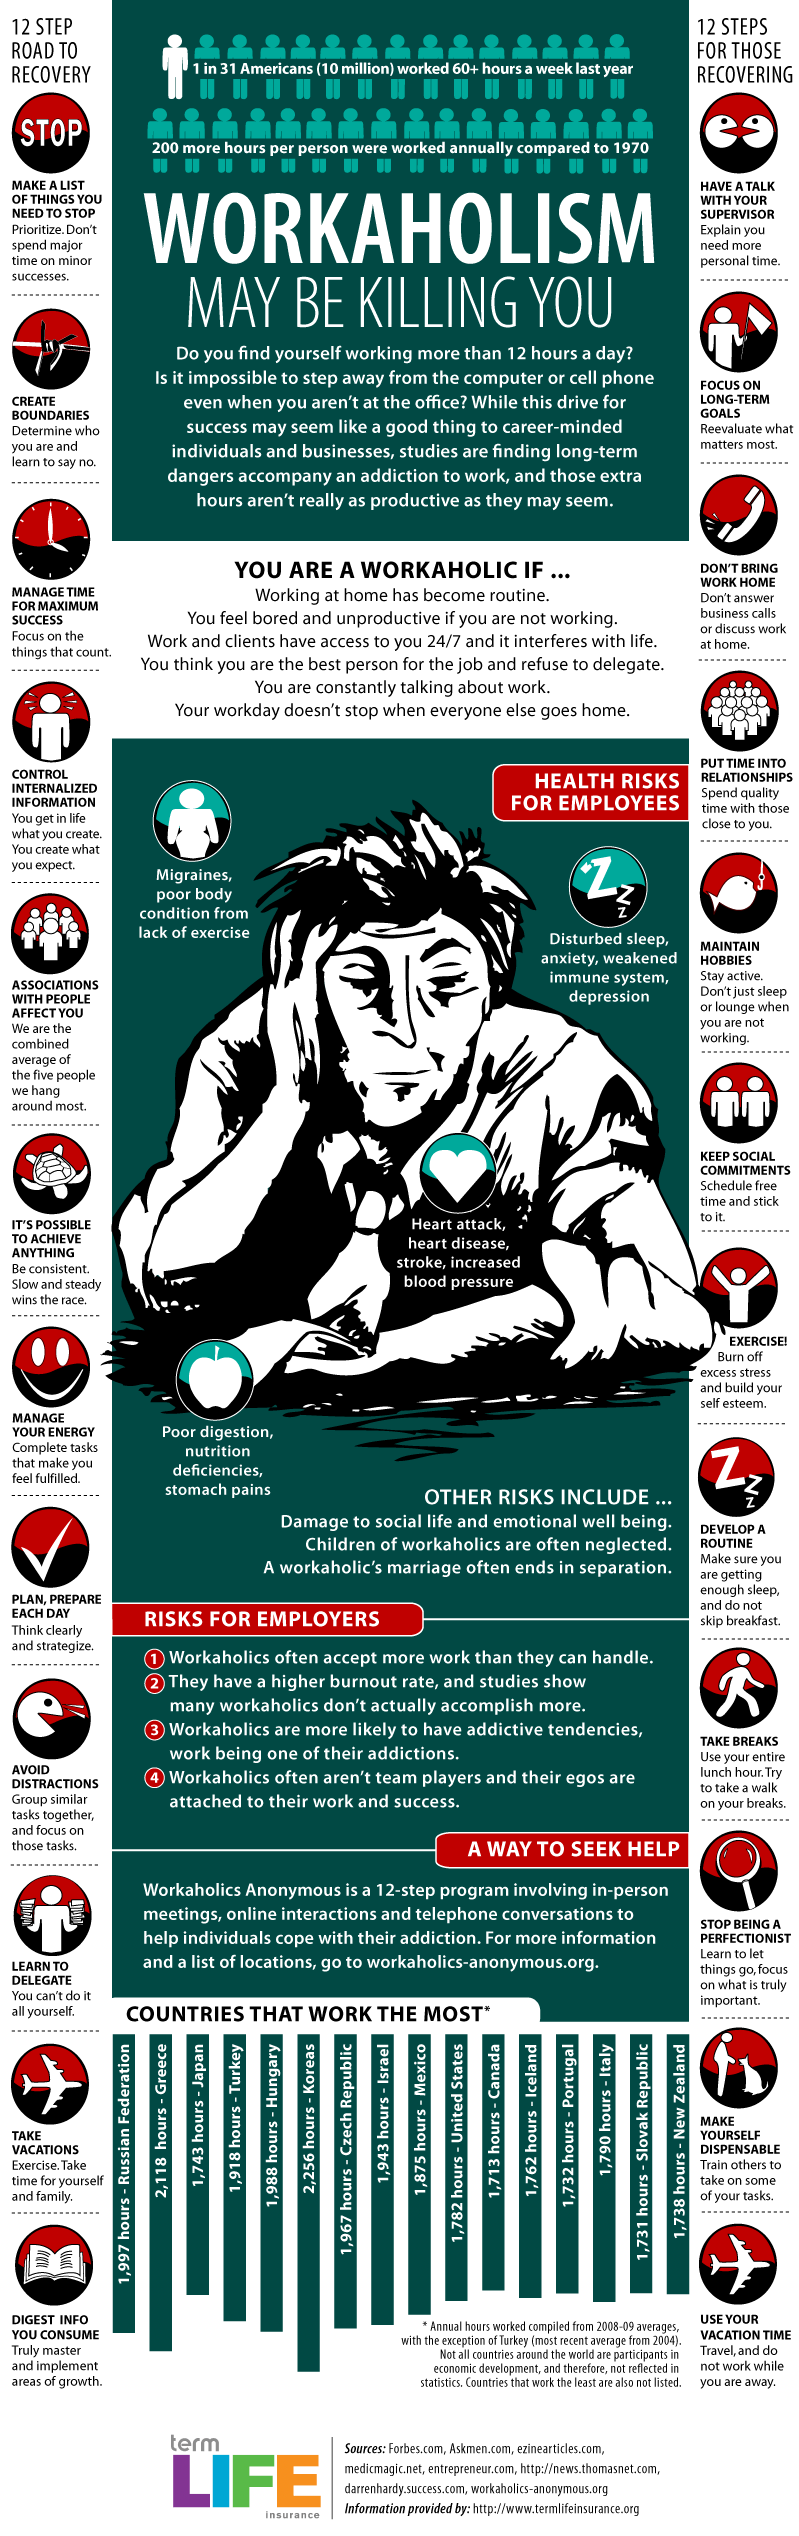 workaholism-may-kill-you-infographic